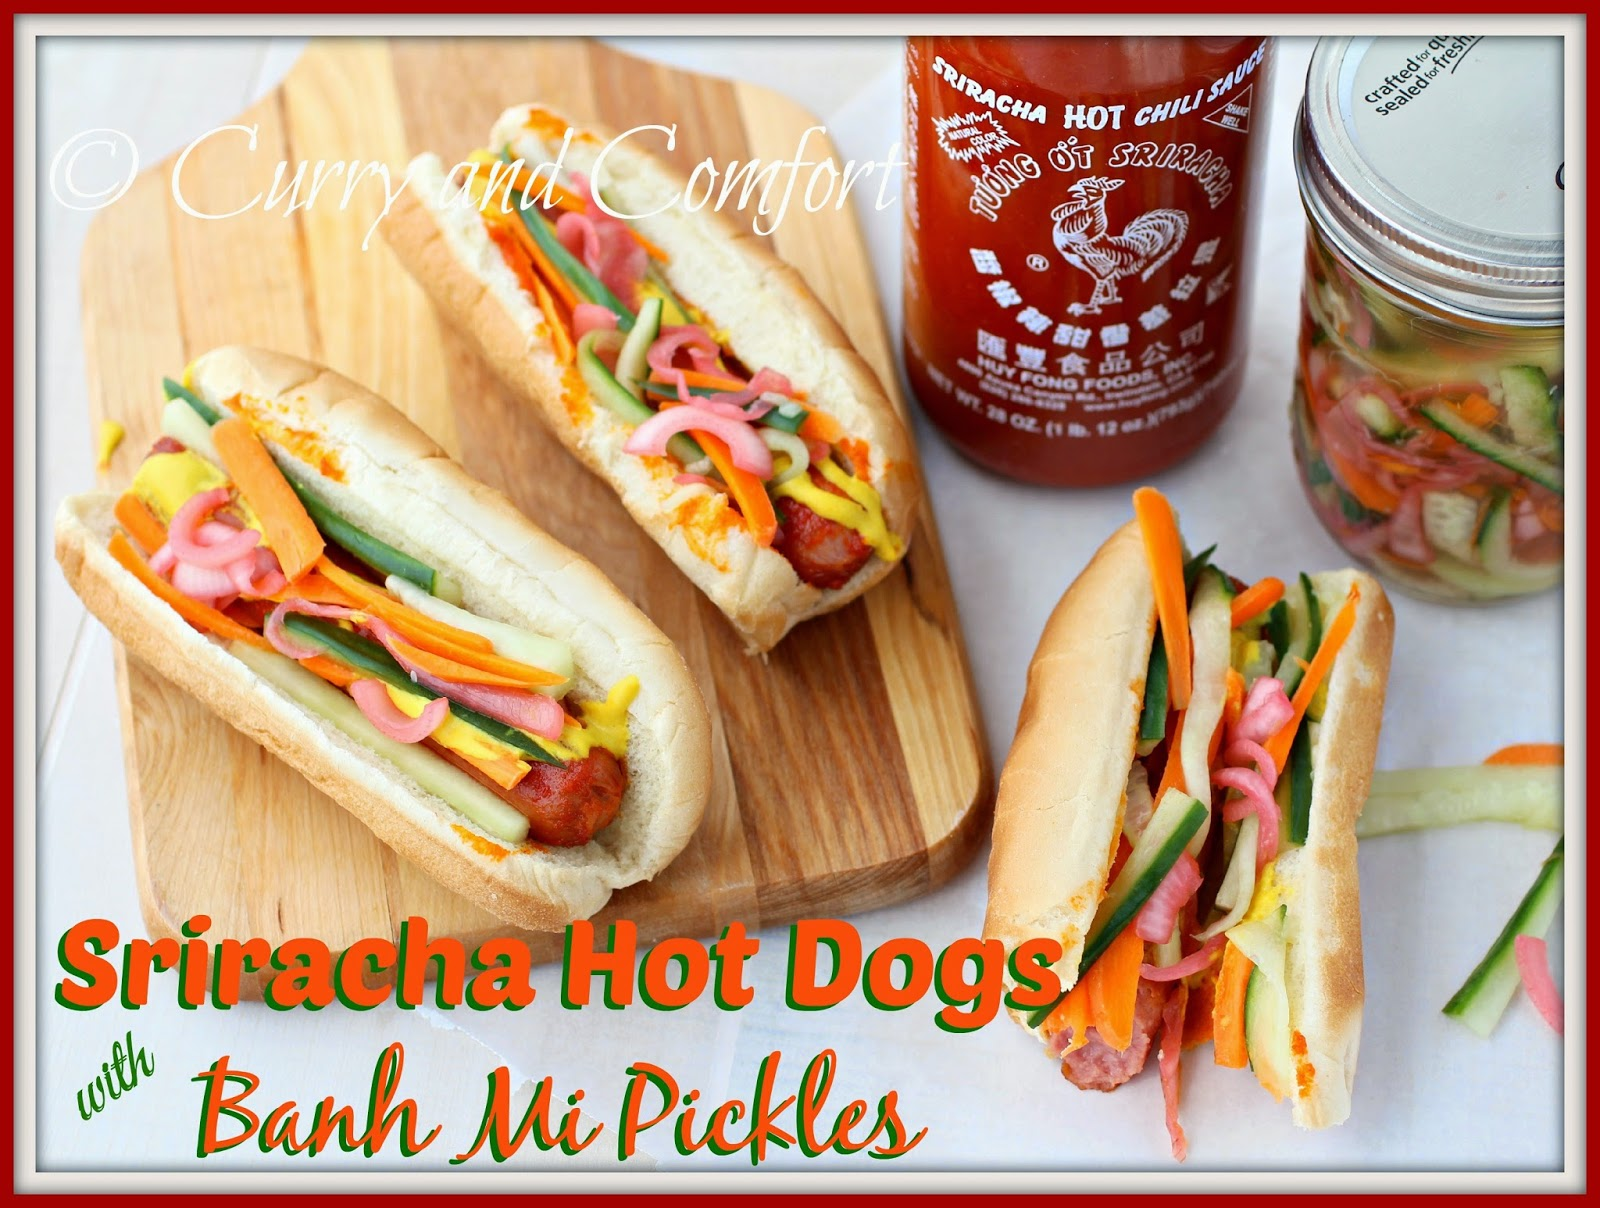 Kitchen Simmer: Sriracha Hot Dogs with Banh Mi Pickles